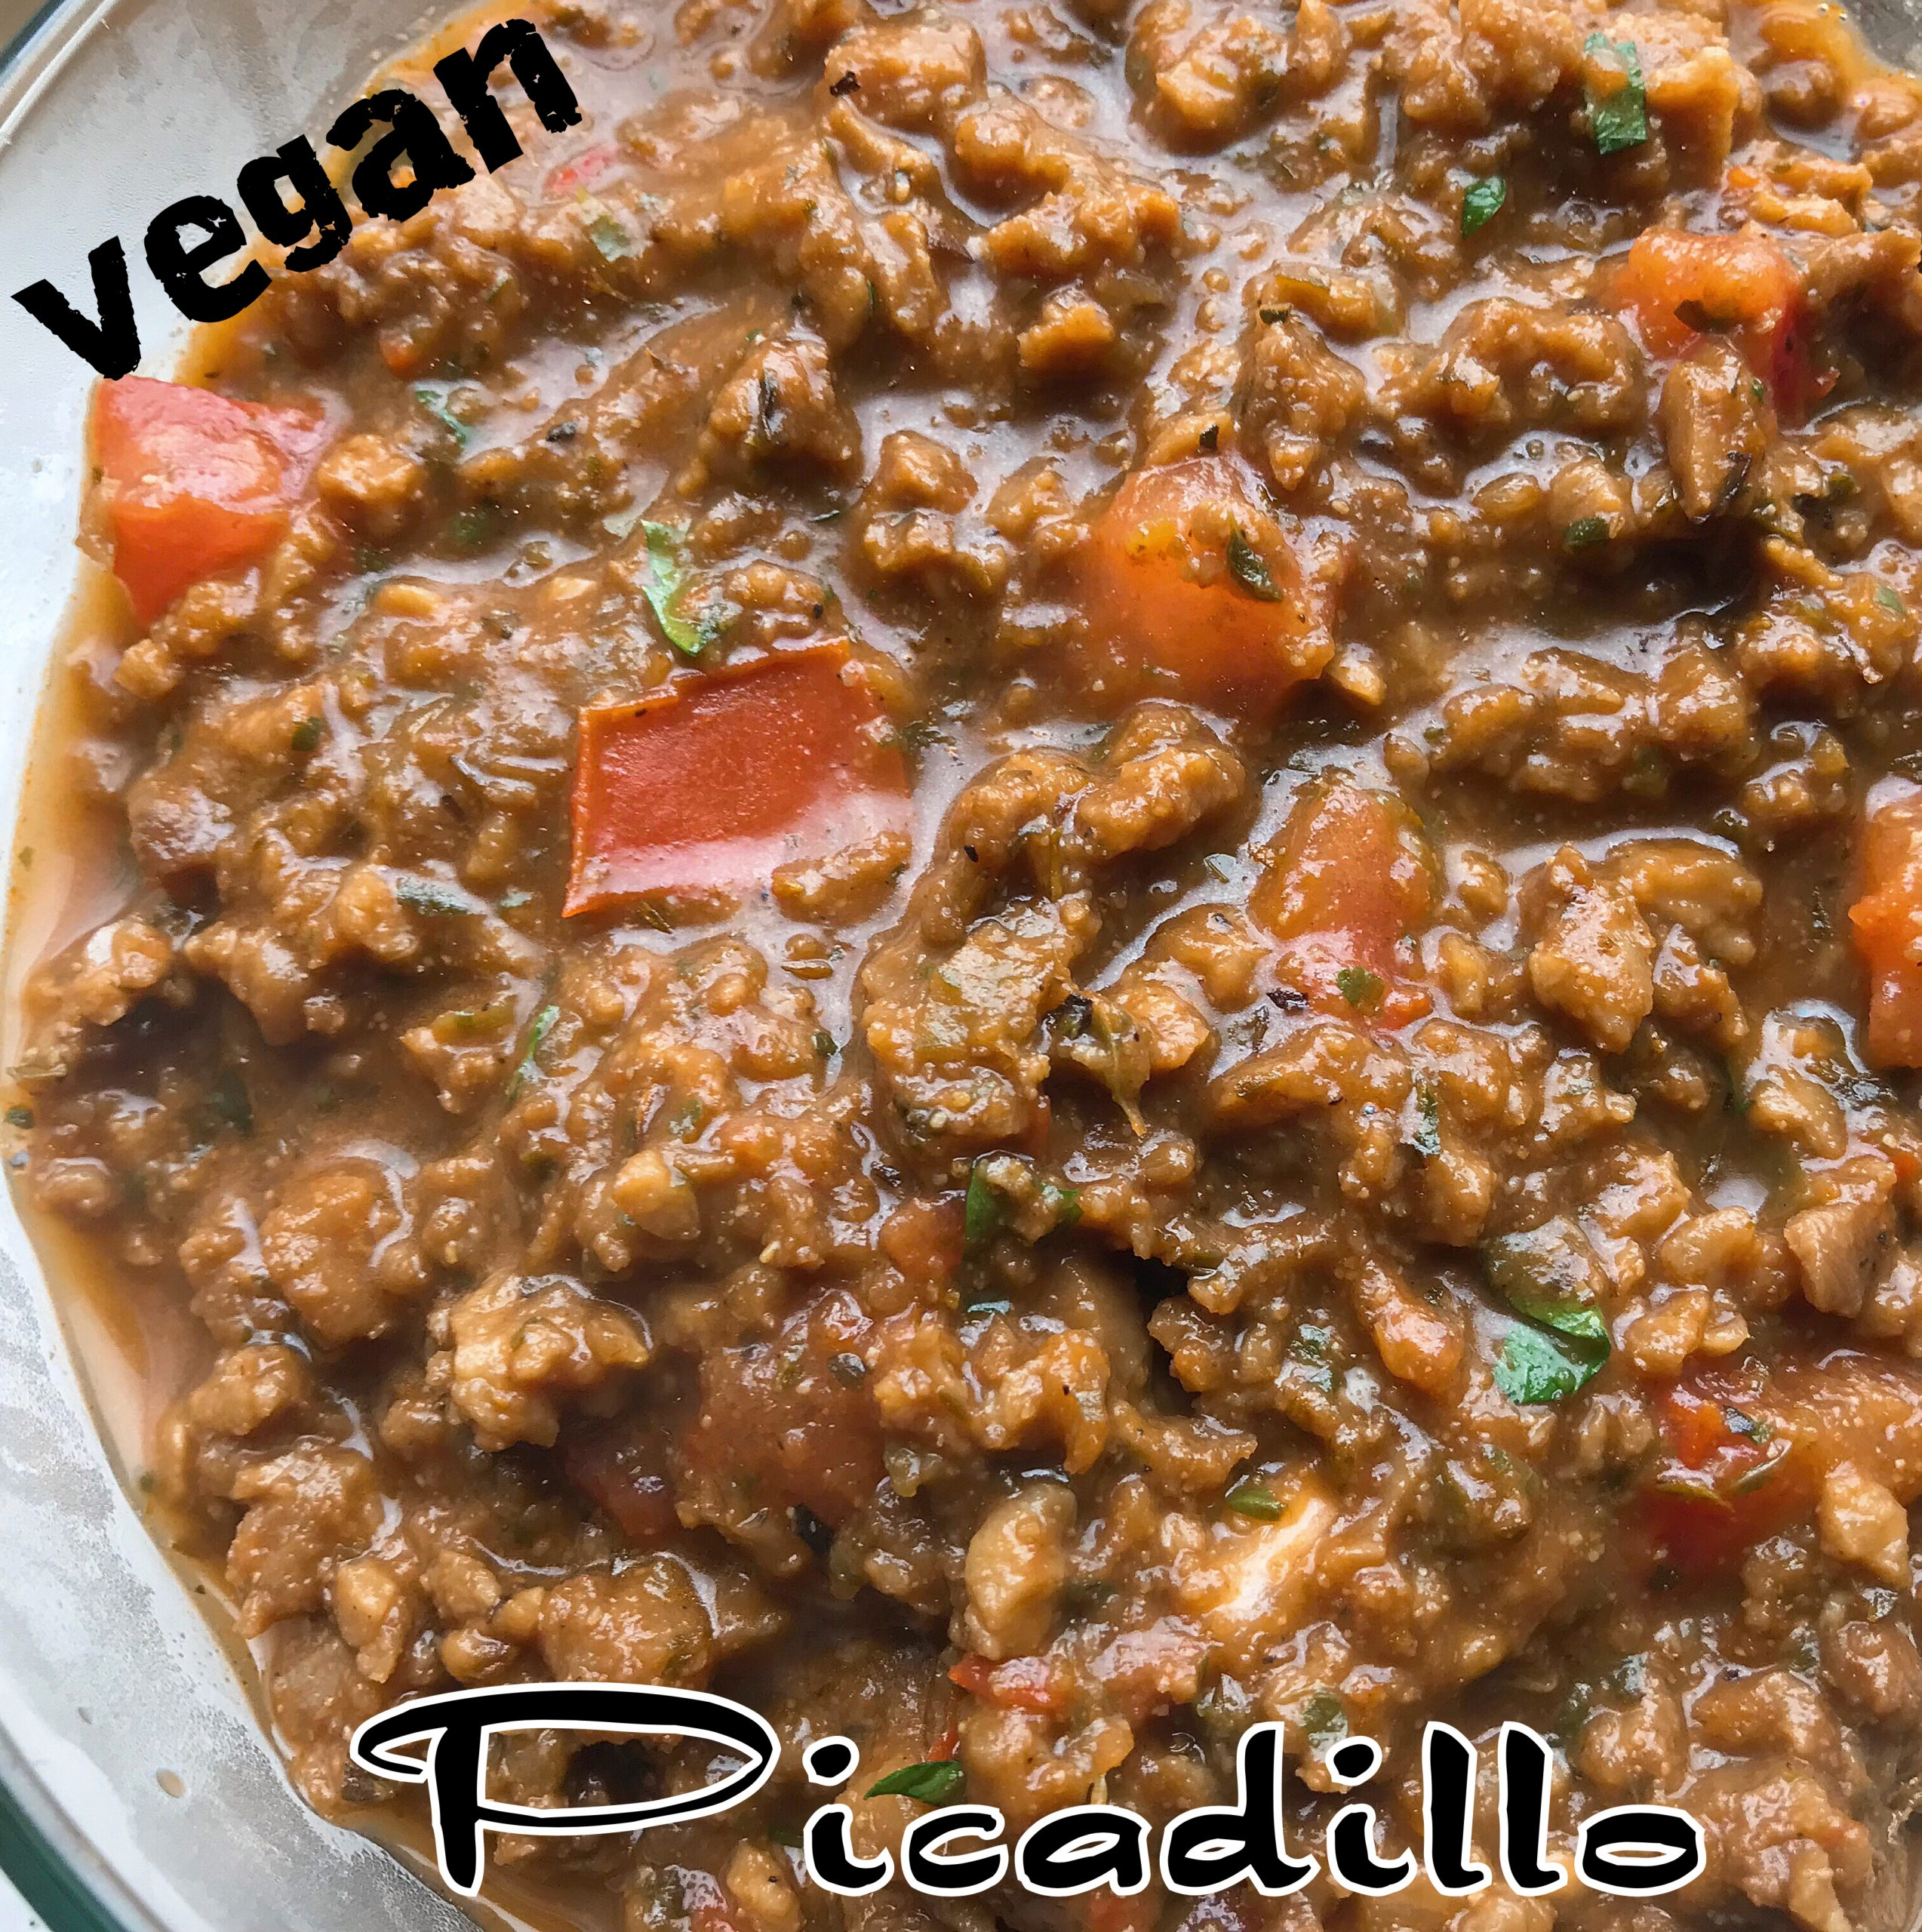 Protected: Vegan Picadillo